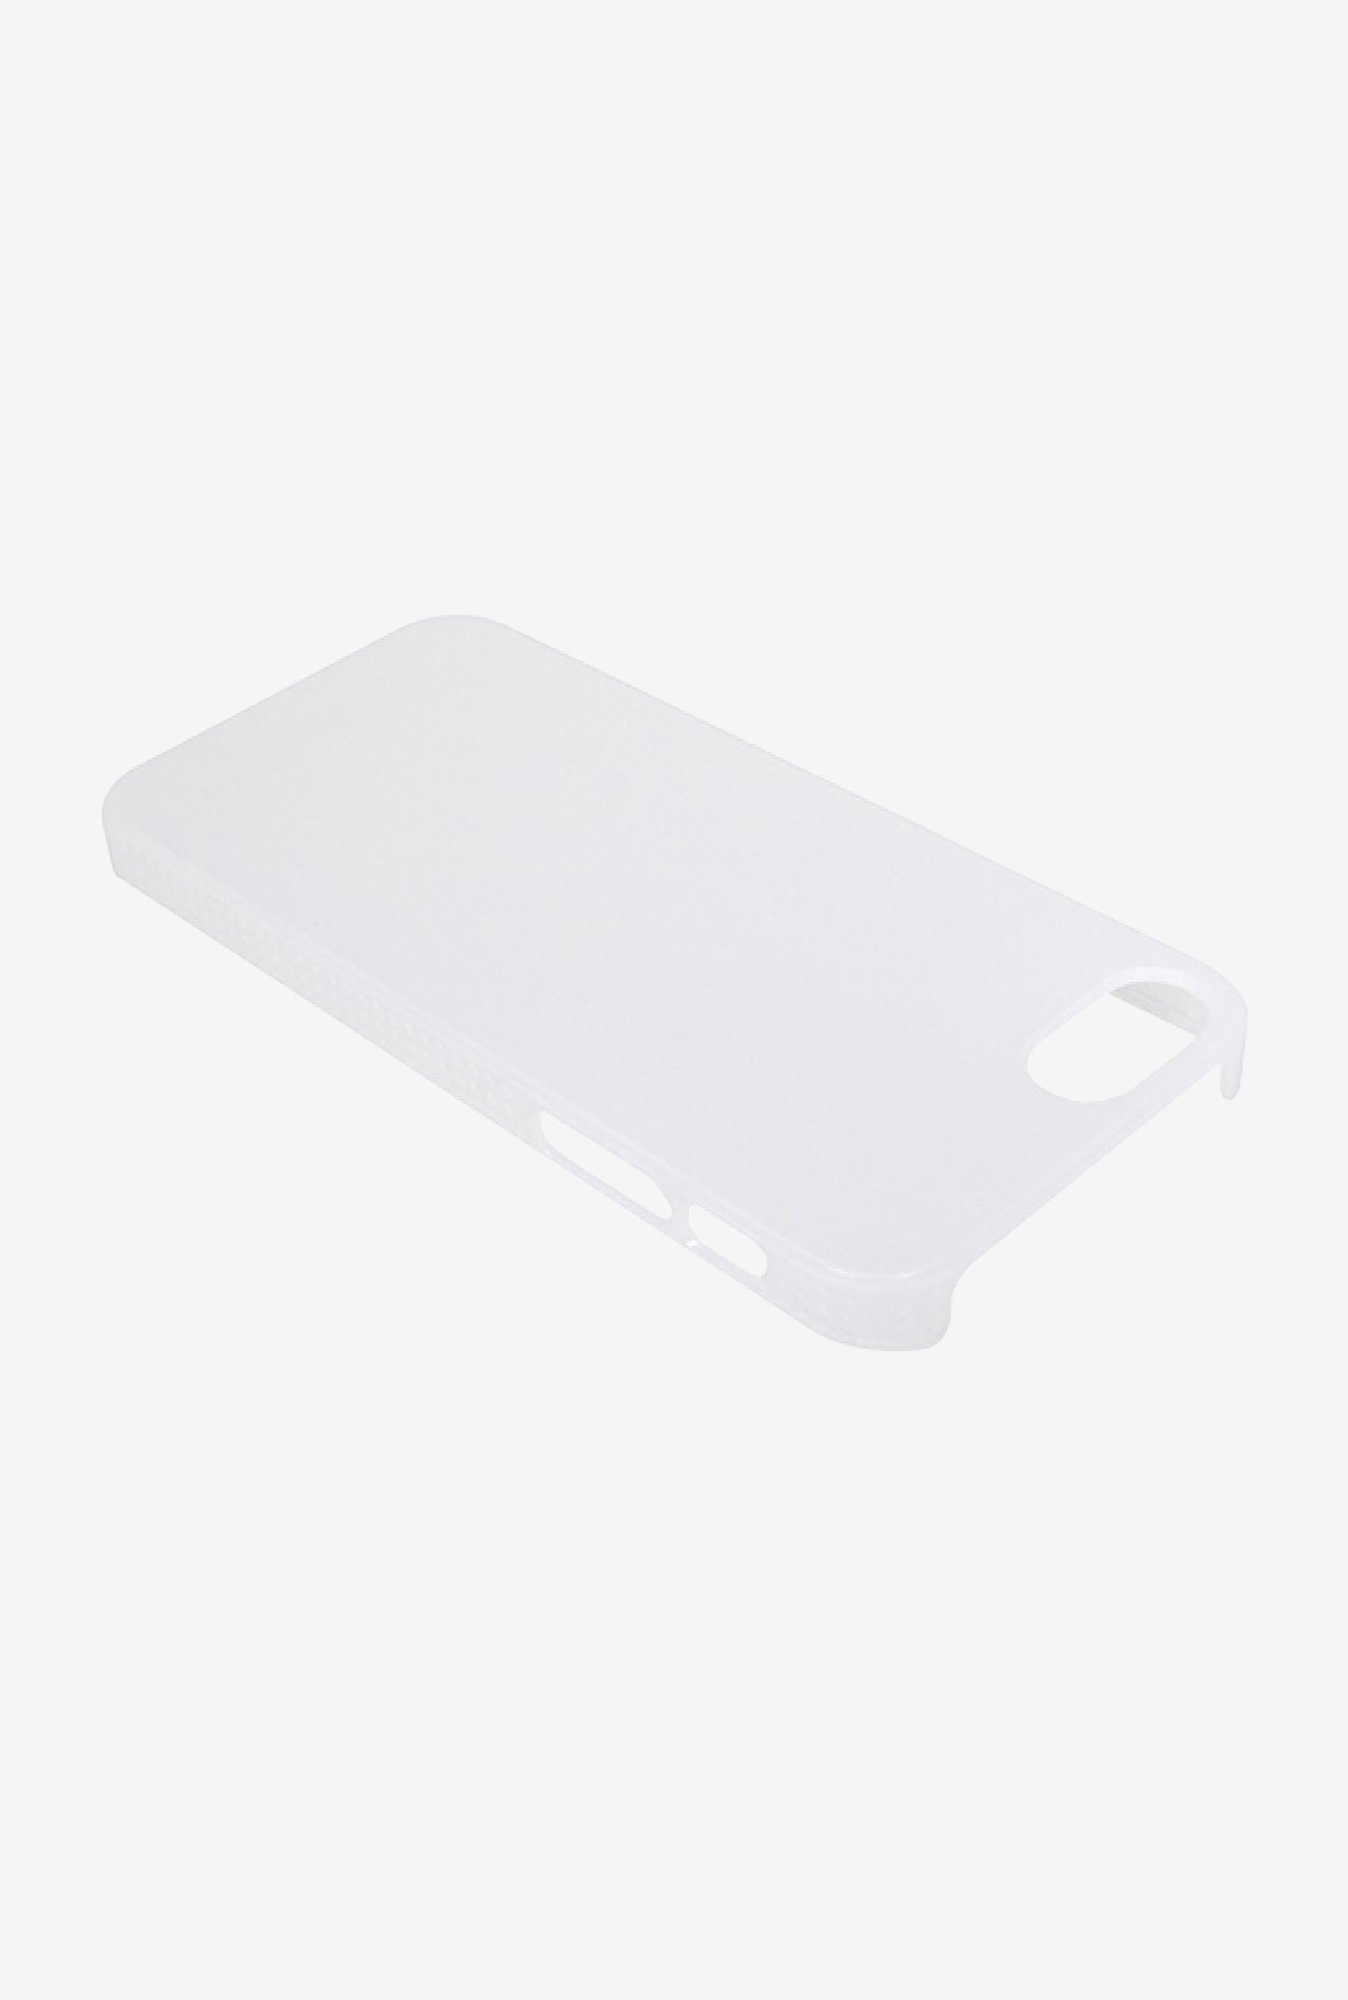 The Joy Factory Ultra-Slim CSD105 iPhone 5 Case White